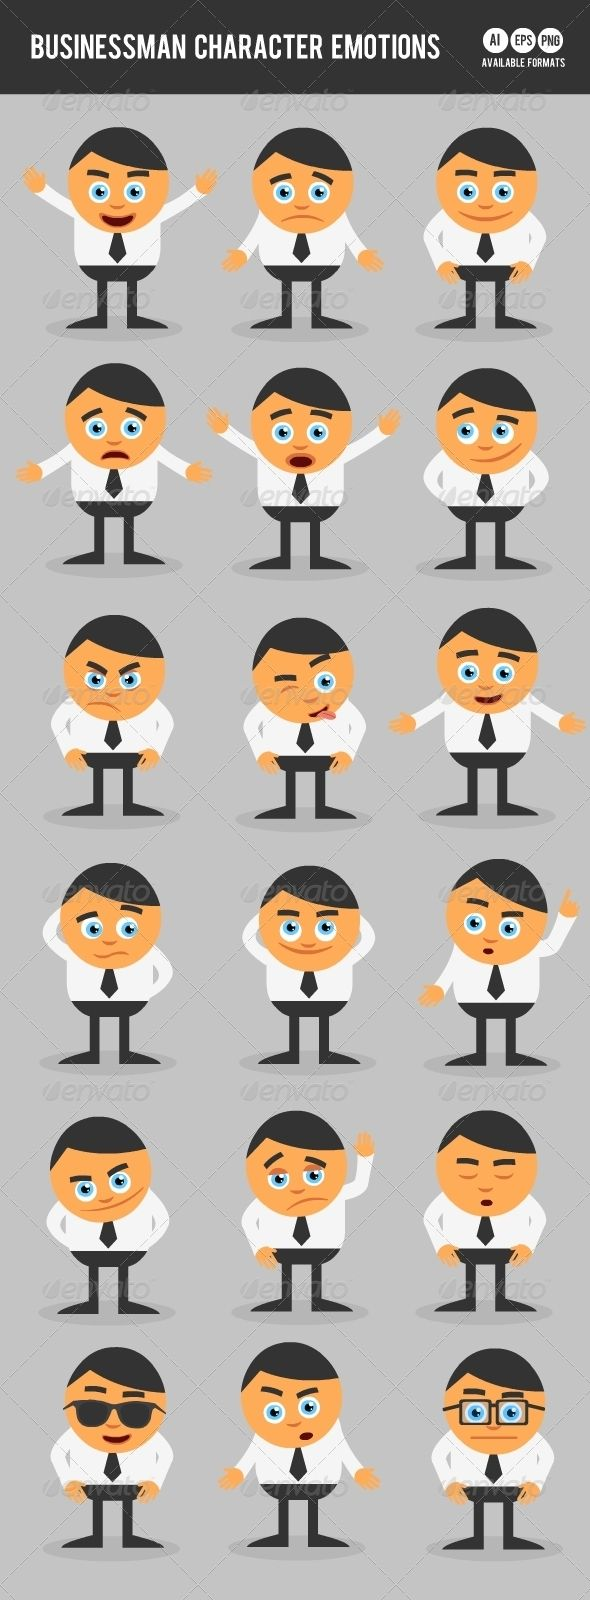 Character Design Emotions : Businessman character emotions graphics and font logo